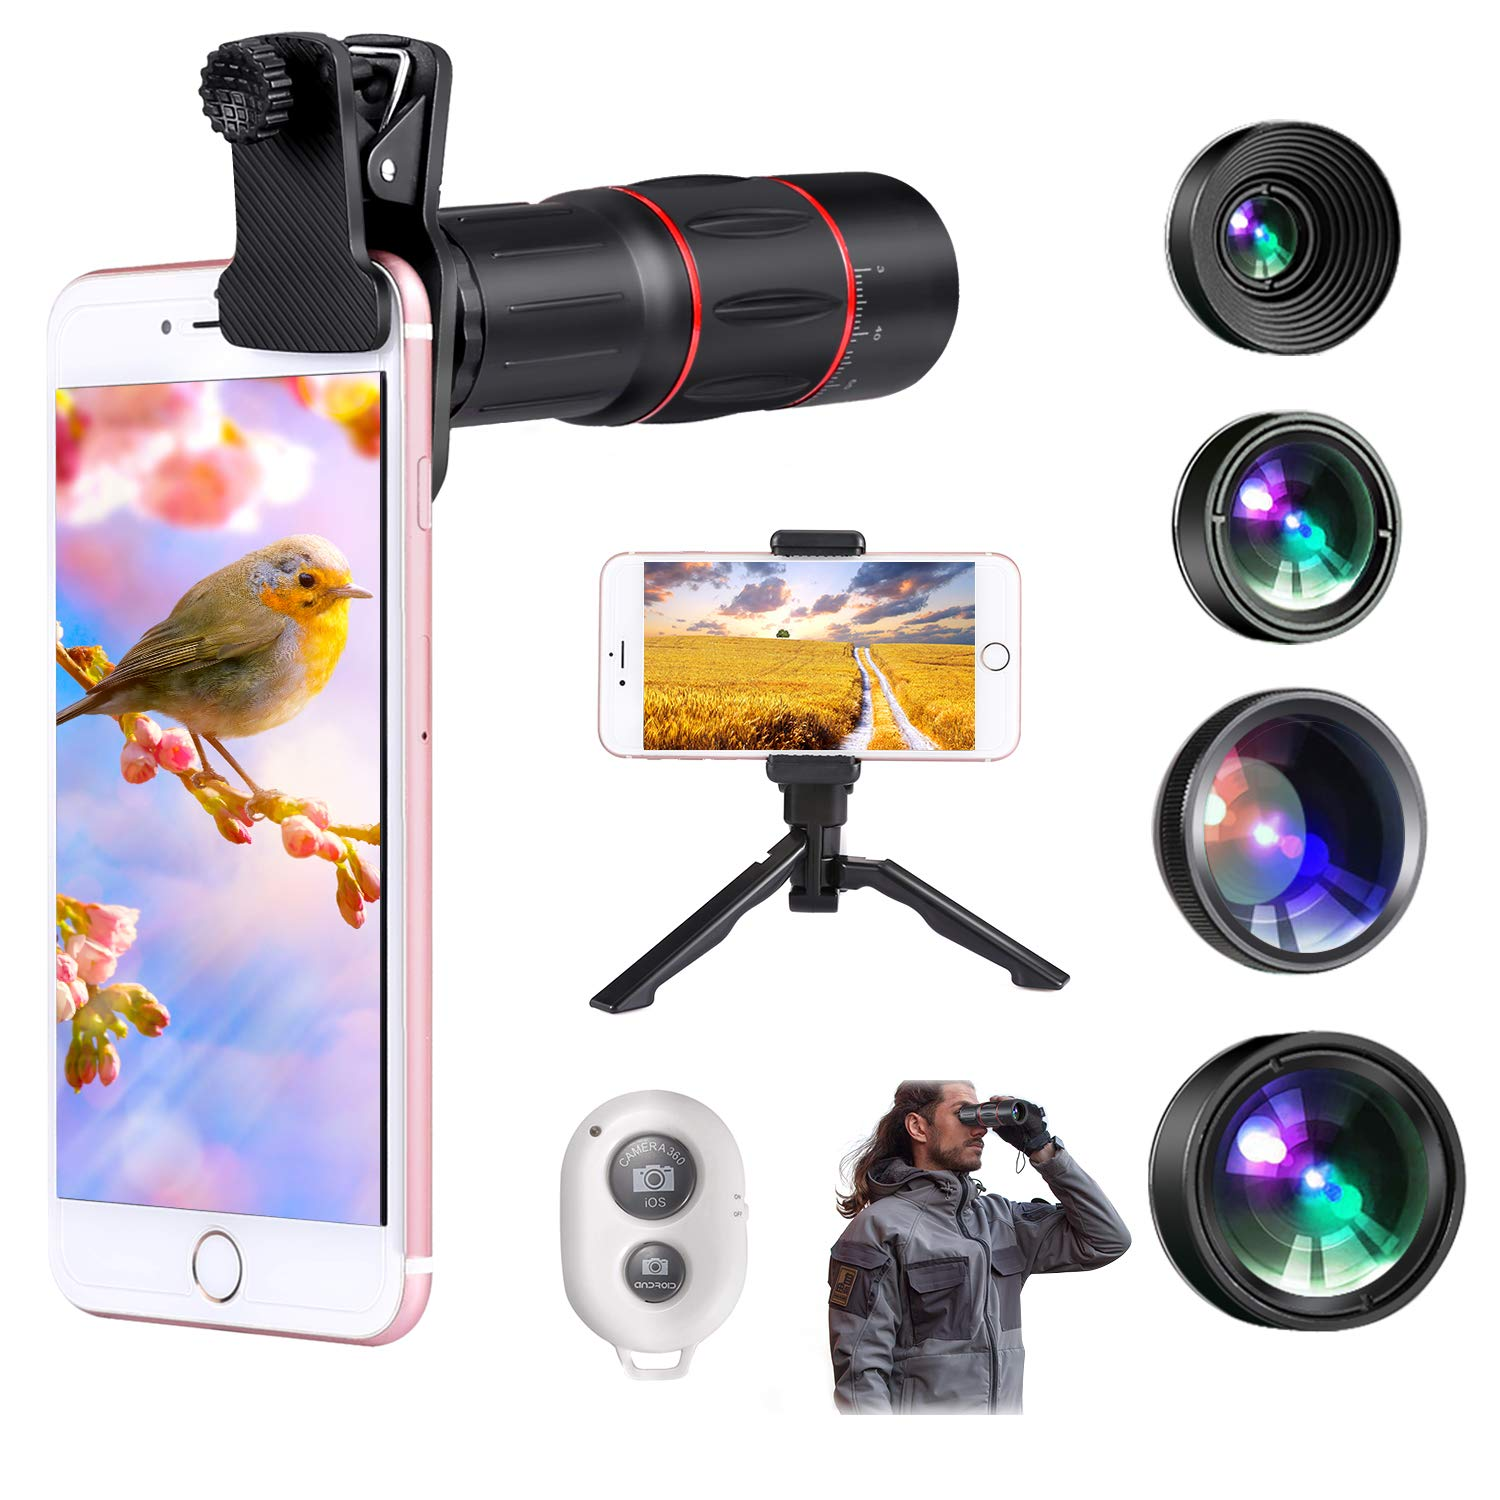 Jisusu for iPhone Camera Lens Kit,18x Telephoto Lens+120°Wide Angle+180°Fisheye+20X Macro+CPL Lens+Tripod+ Shutter Remote,Clips-On Cell Phone Camera Lens for iPhone/Samsung/Android/Most Smartphones by JISUSU